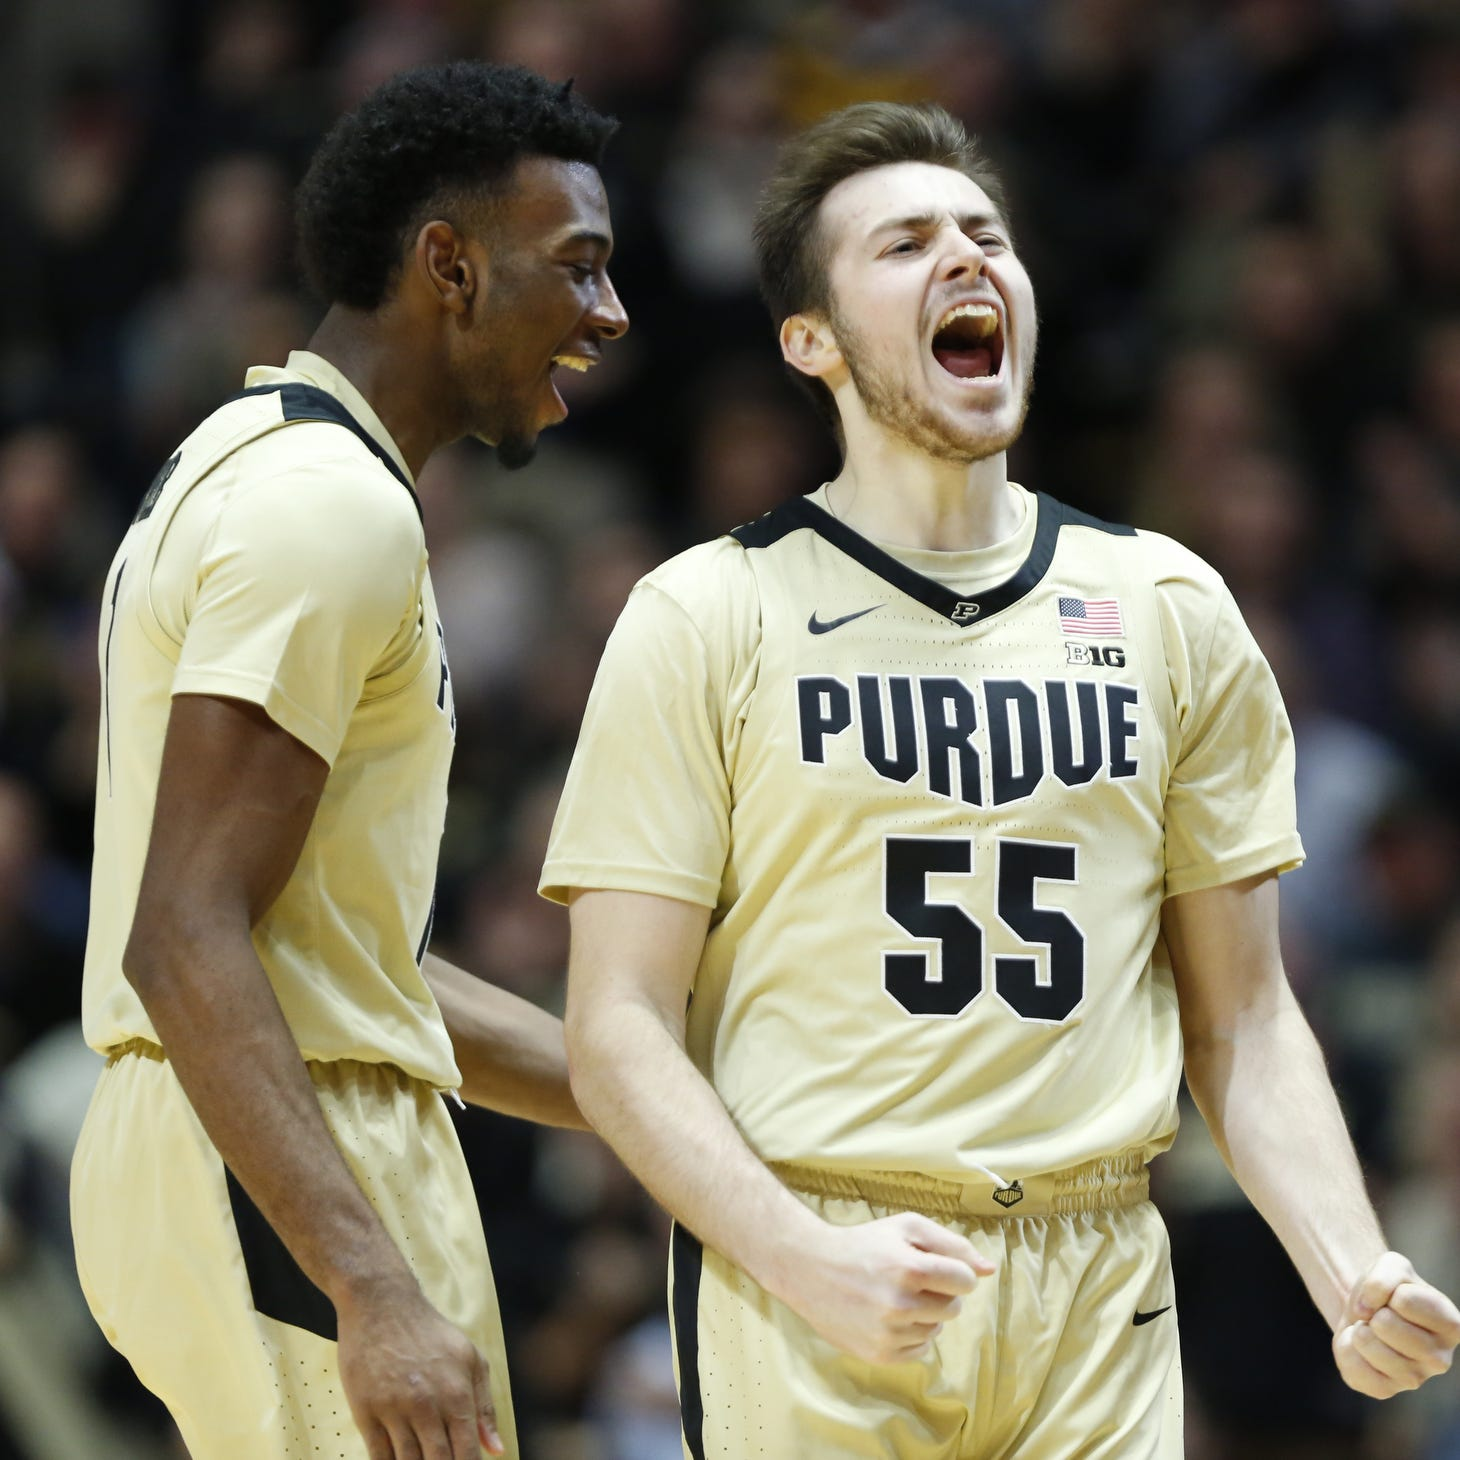 Purdue basketball freshmen continuing their defensive education